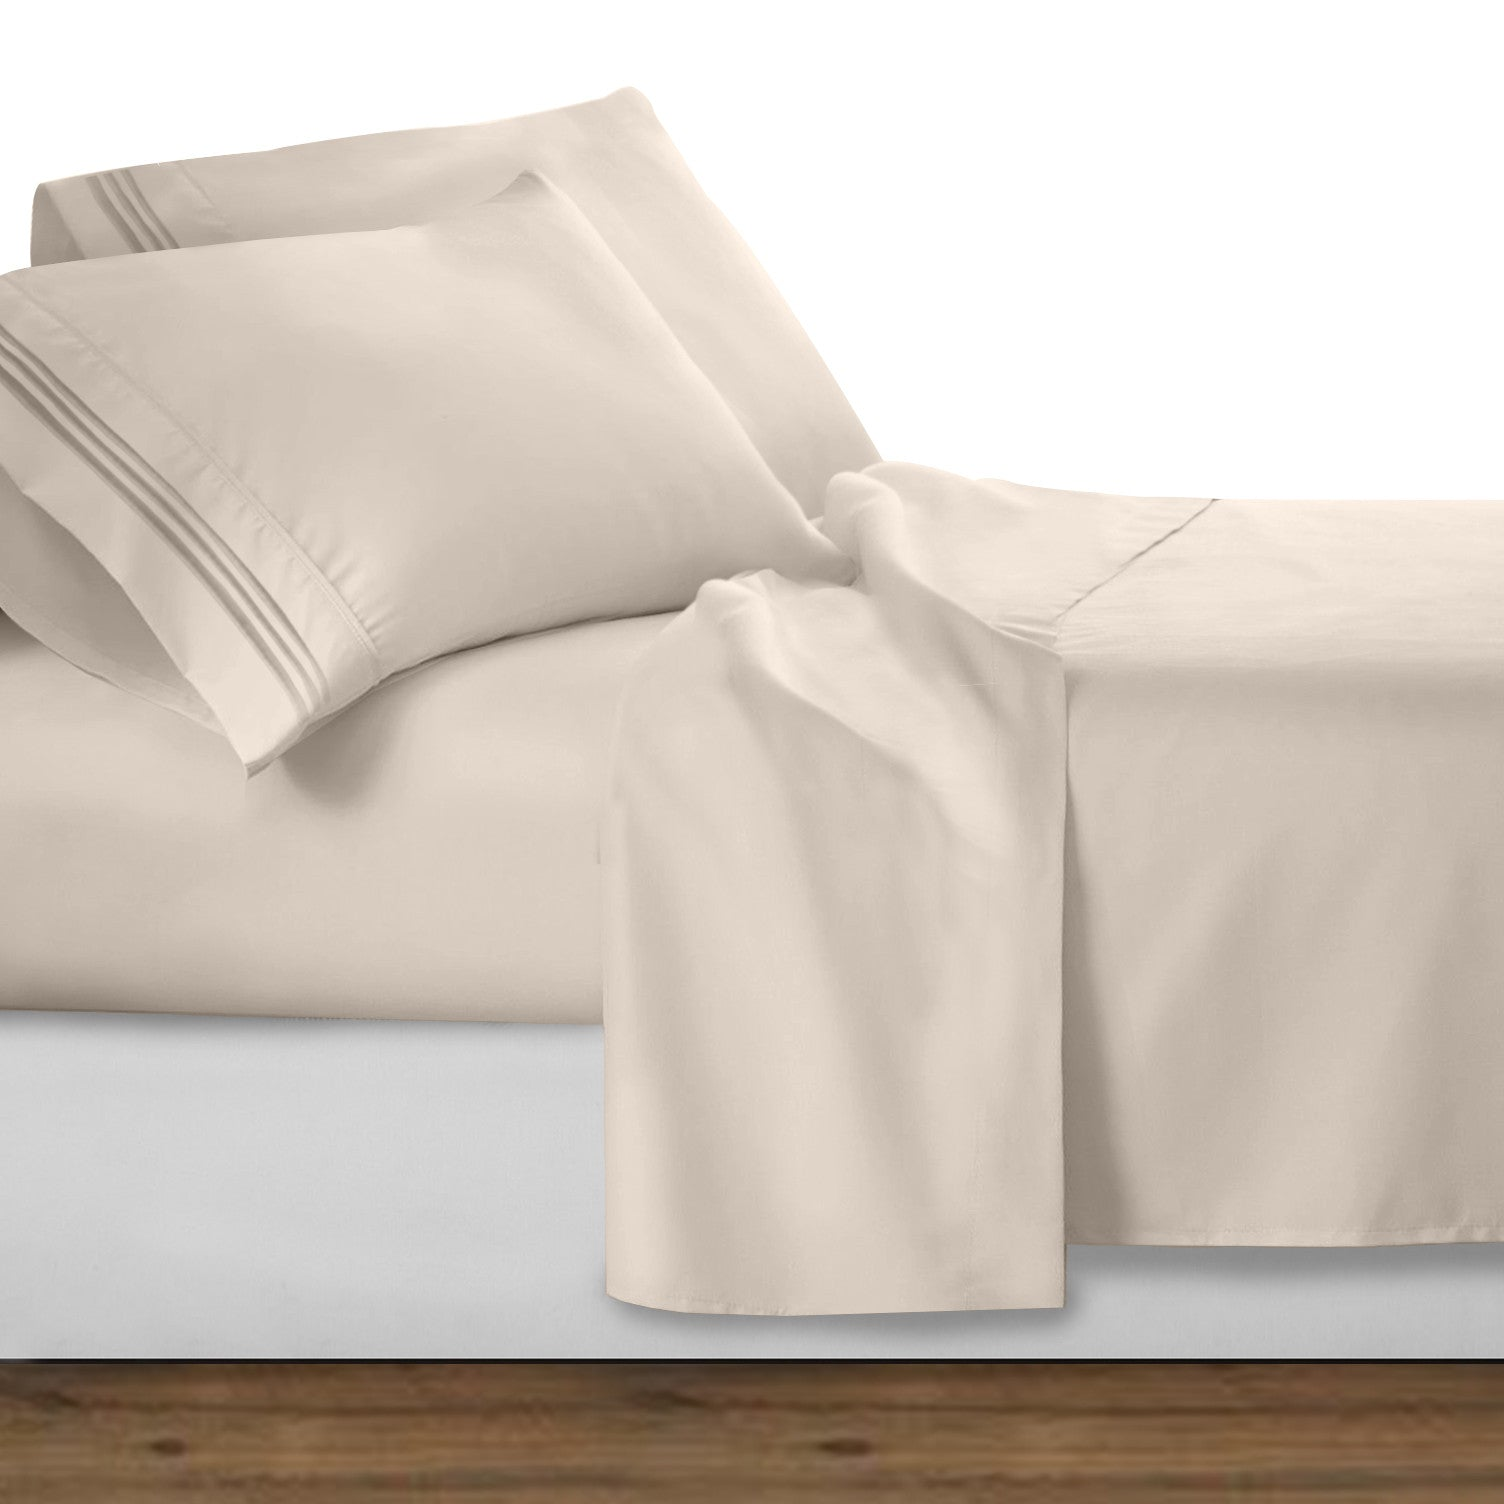 Waterbed Queen 1800 Series Bed Sheet Set